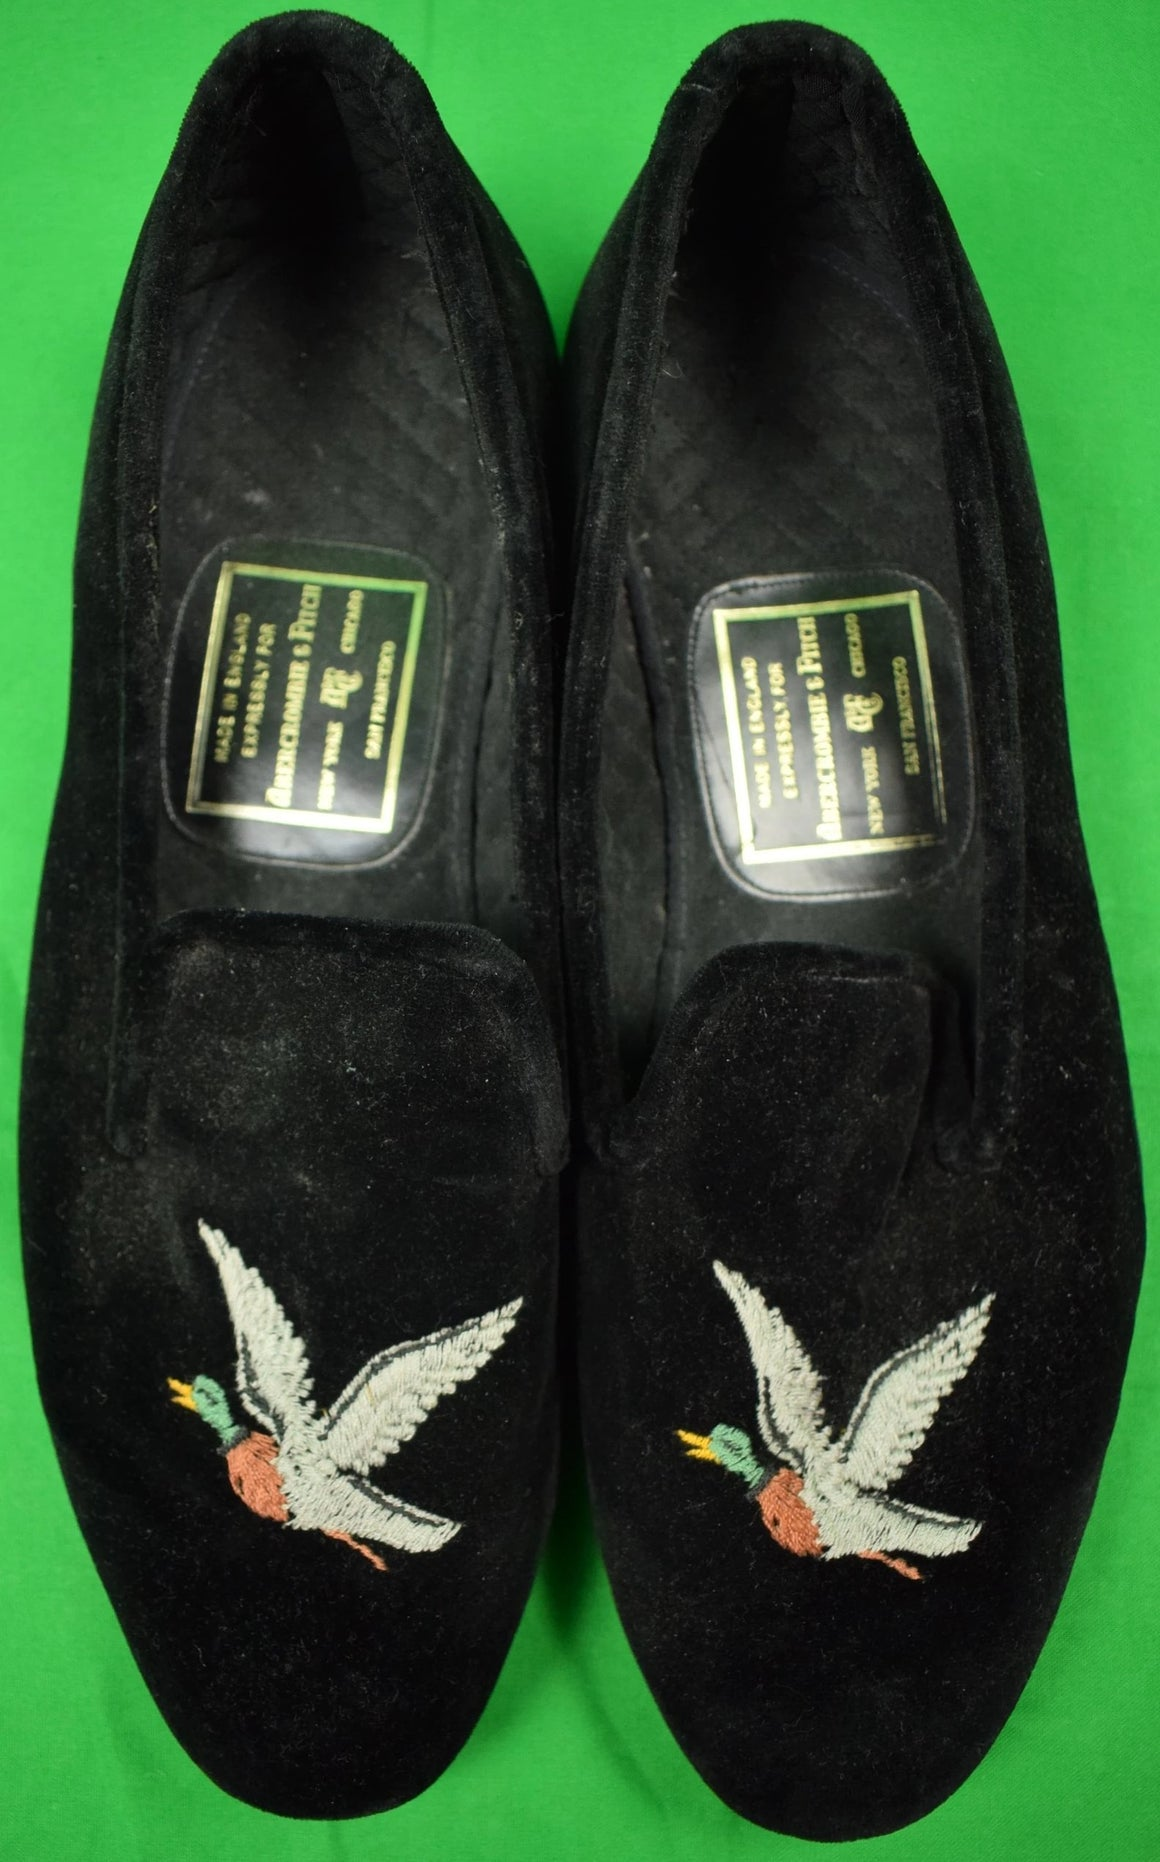 Abercrombie & Fitch Duck Black Velvet English Slippers Sz: 10E